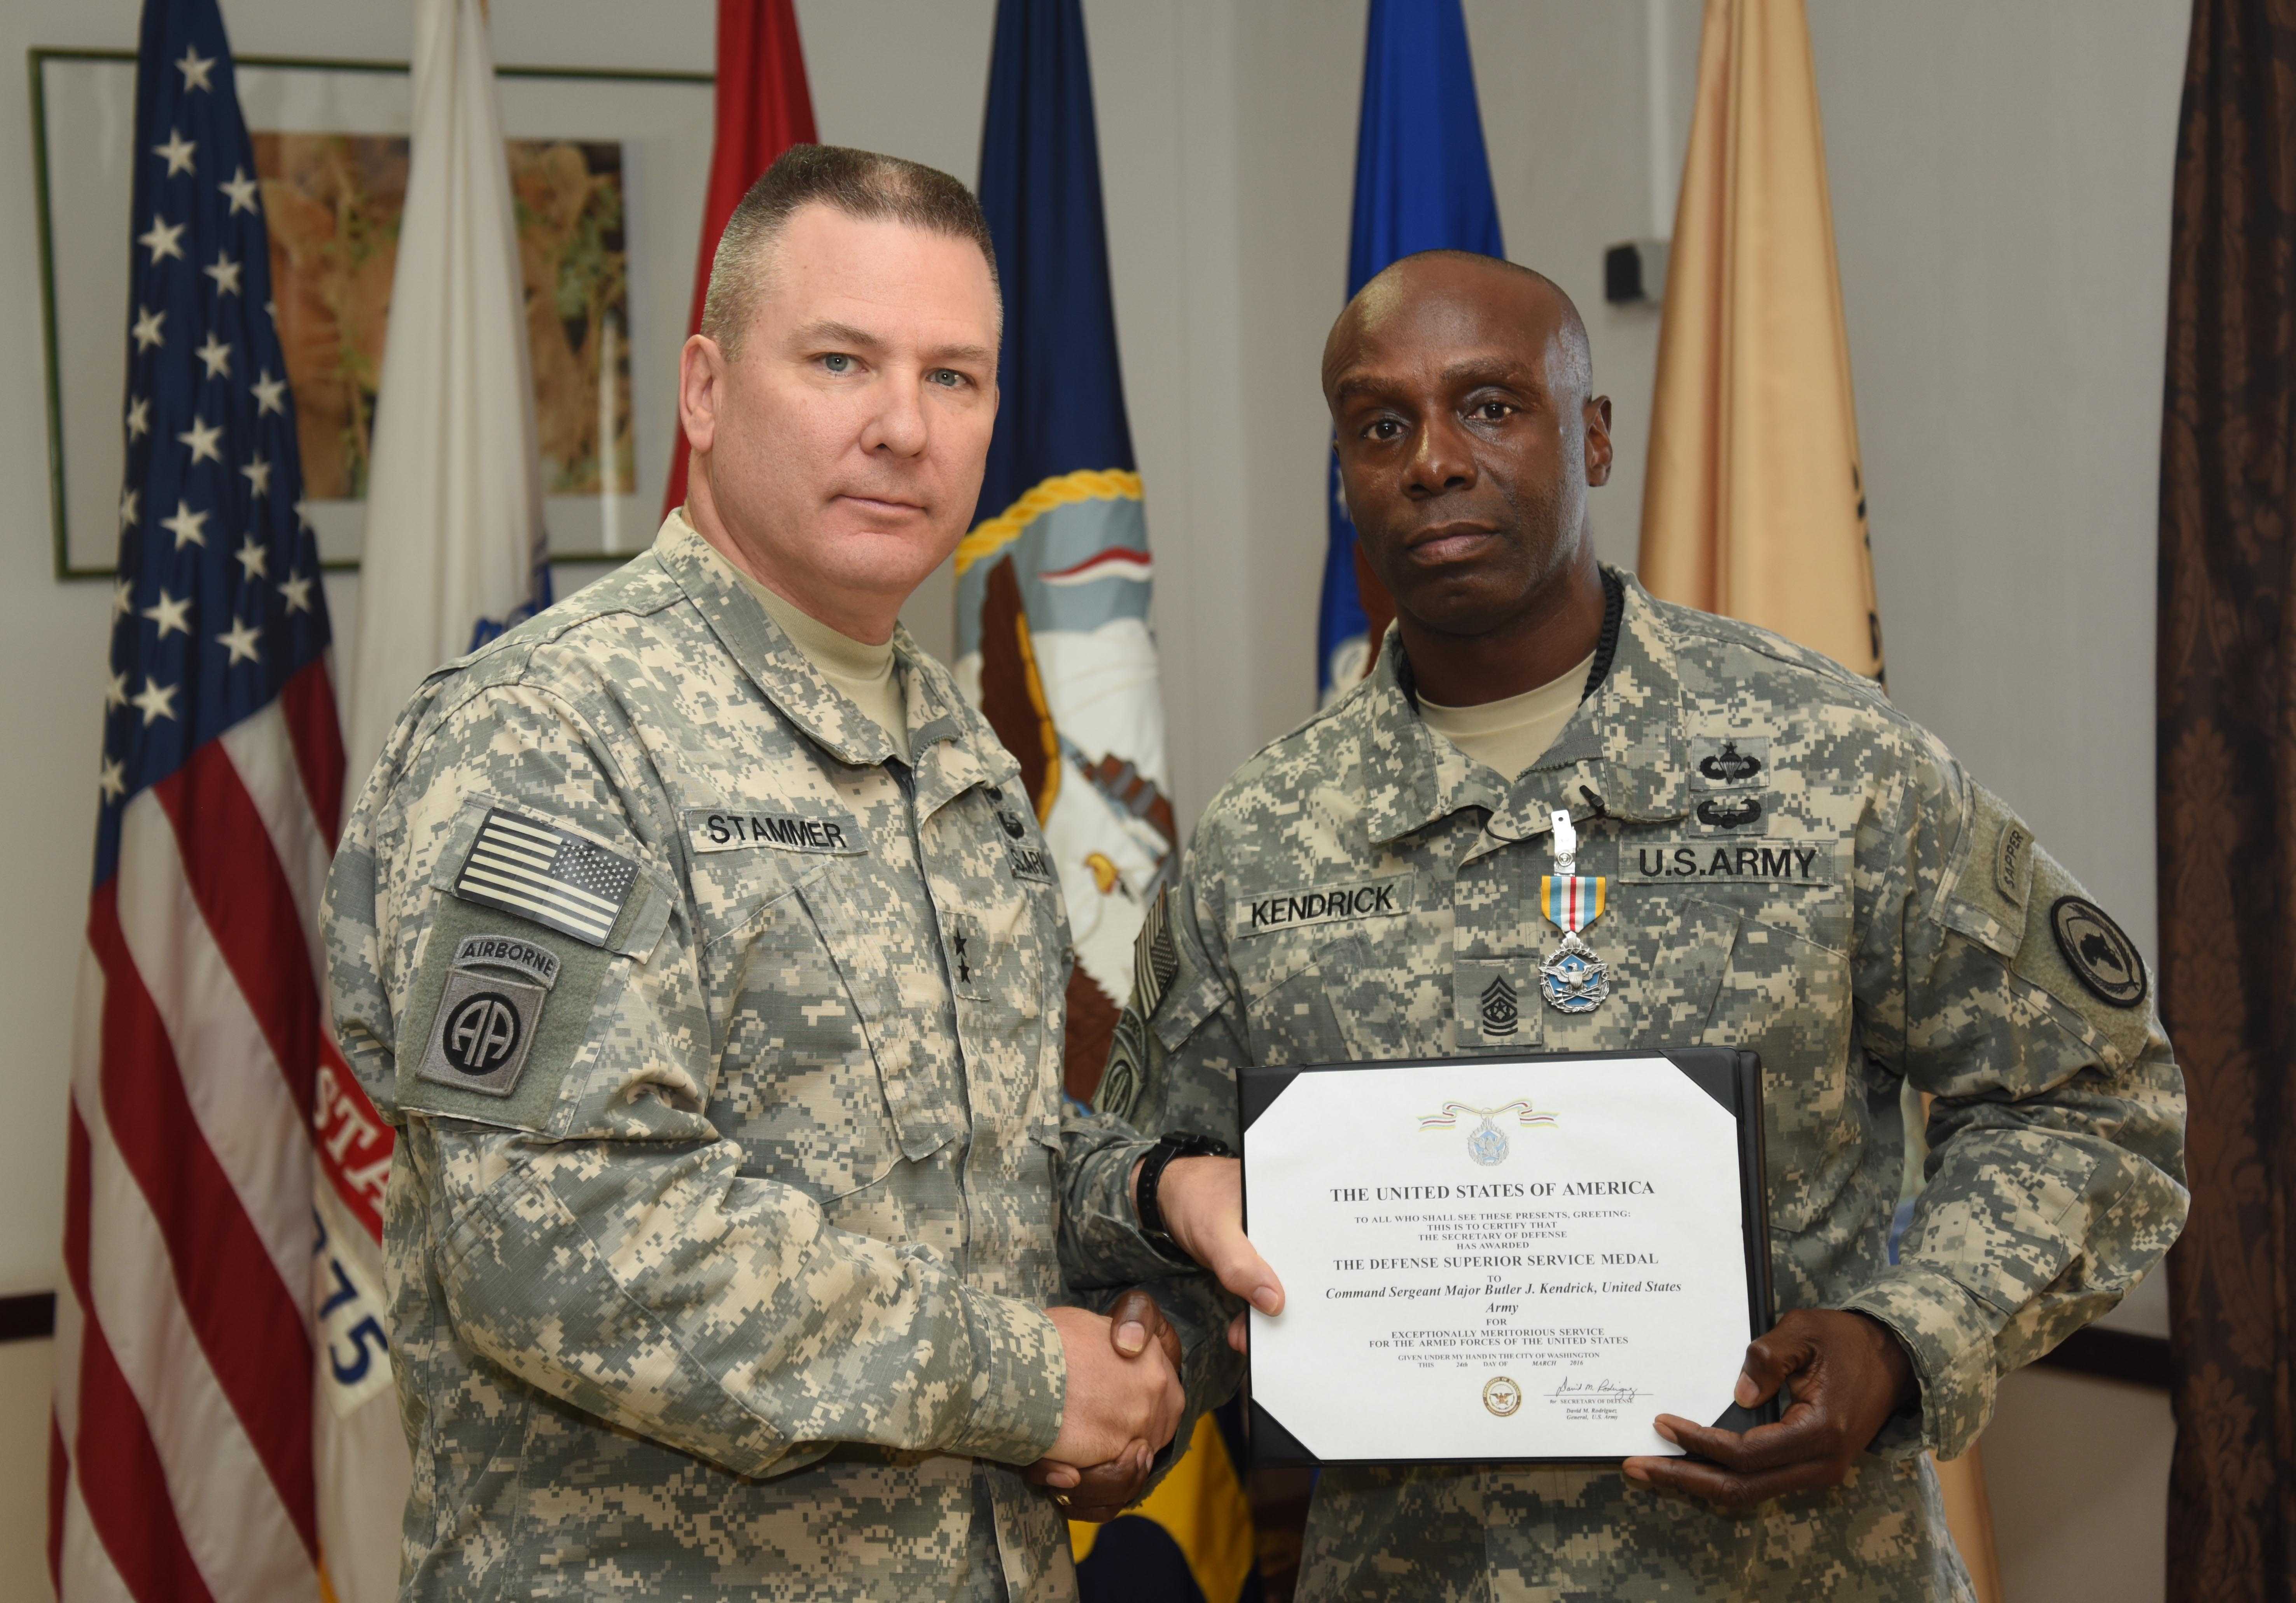 U.S. Army Maj. Gen. Mark Stammer, Combined Joint Task Force-Horn of Africa commanding general, awards U.S. Army Command Sgt. Maj. Butler Kendrick Jr., CJTF-HOA command senior enlisted leader, the Defense Superior Service Medal at his farewell awards ceremony March 27, 2016. Butler has been the command senior enlisted leader since June. (U.S. Air Force photo by Staff Sgt. Kate Thornton)